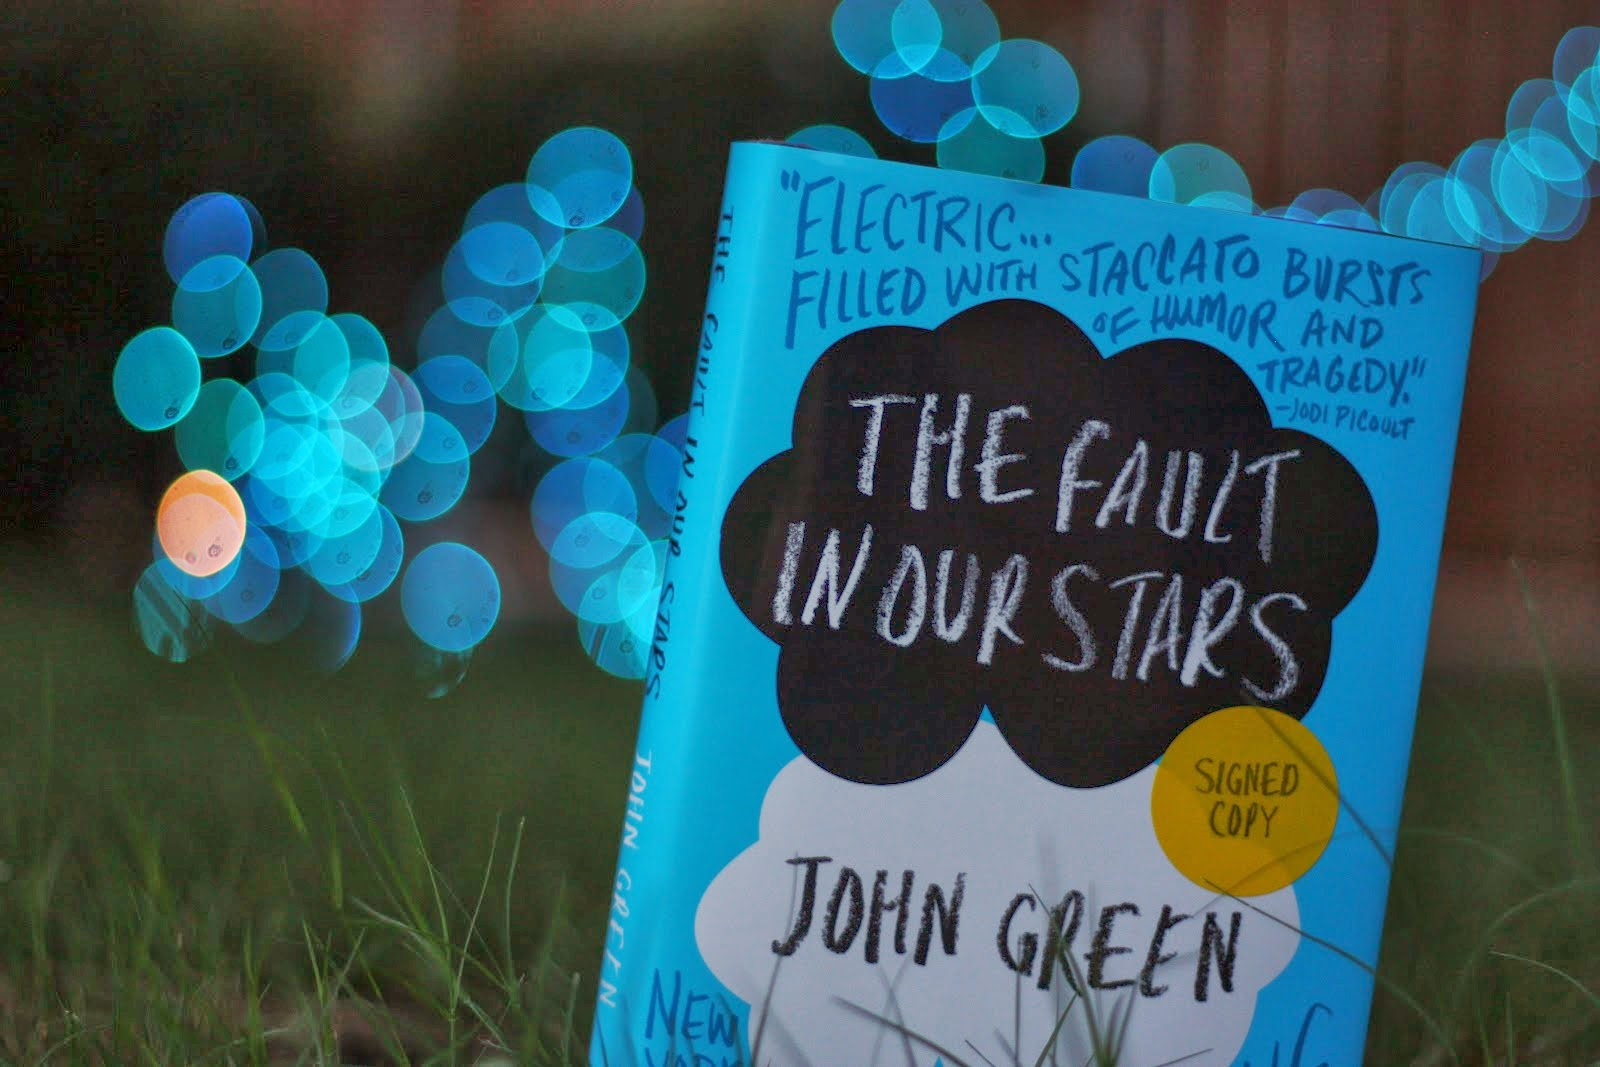 The Best Quotes From The Fault in Our Stars POPSUGAR